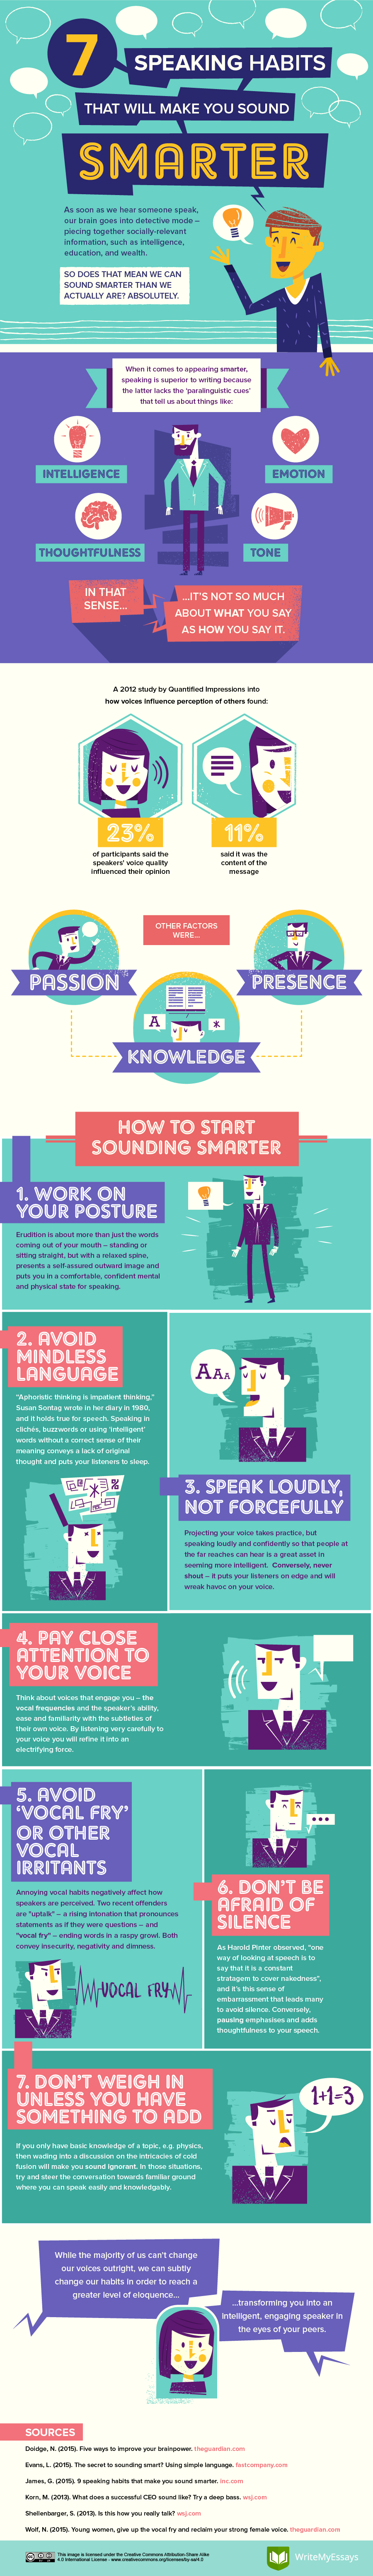 7 Speaking Habits That Will Make You Sound Smarter